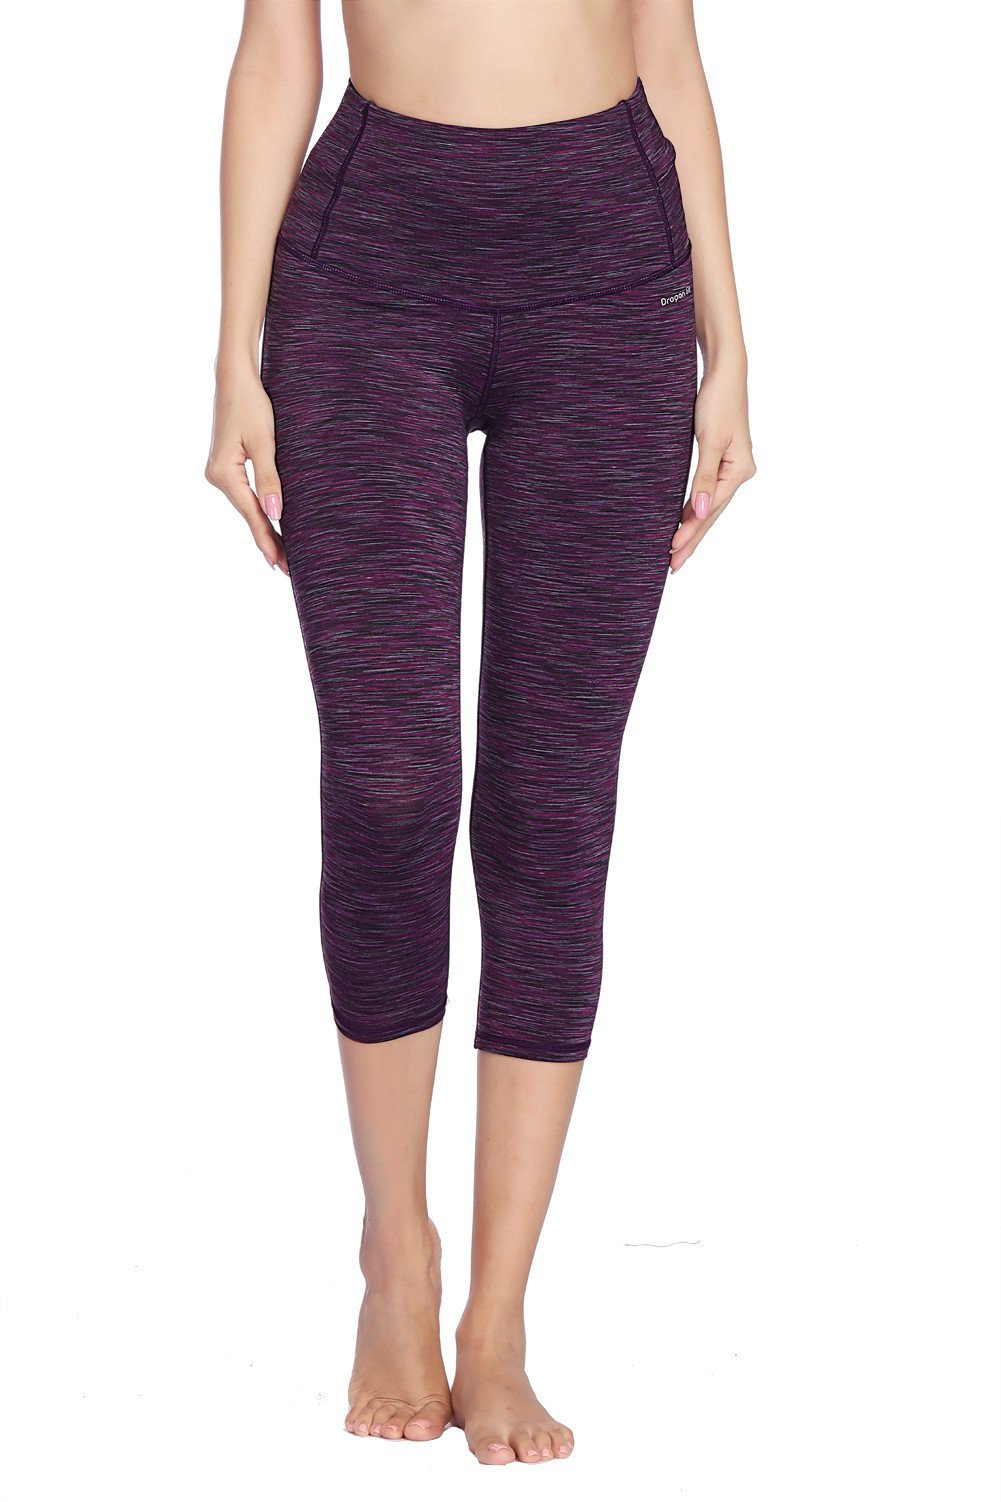 Dragon Fit Compression Yoga Pants Power Stretch Workout Leggings with High Waist Tummy Control (Large, Capri-Purple) by Dragon Fit (Image #2)